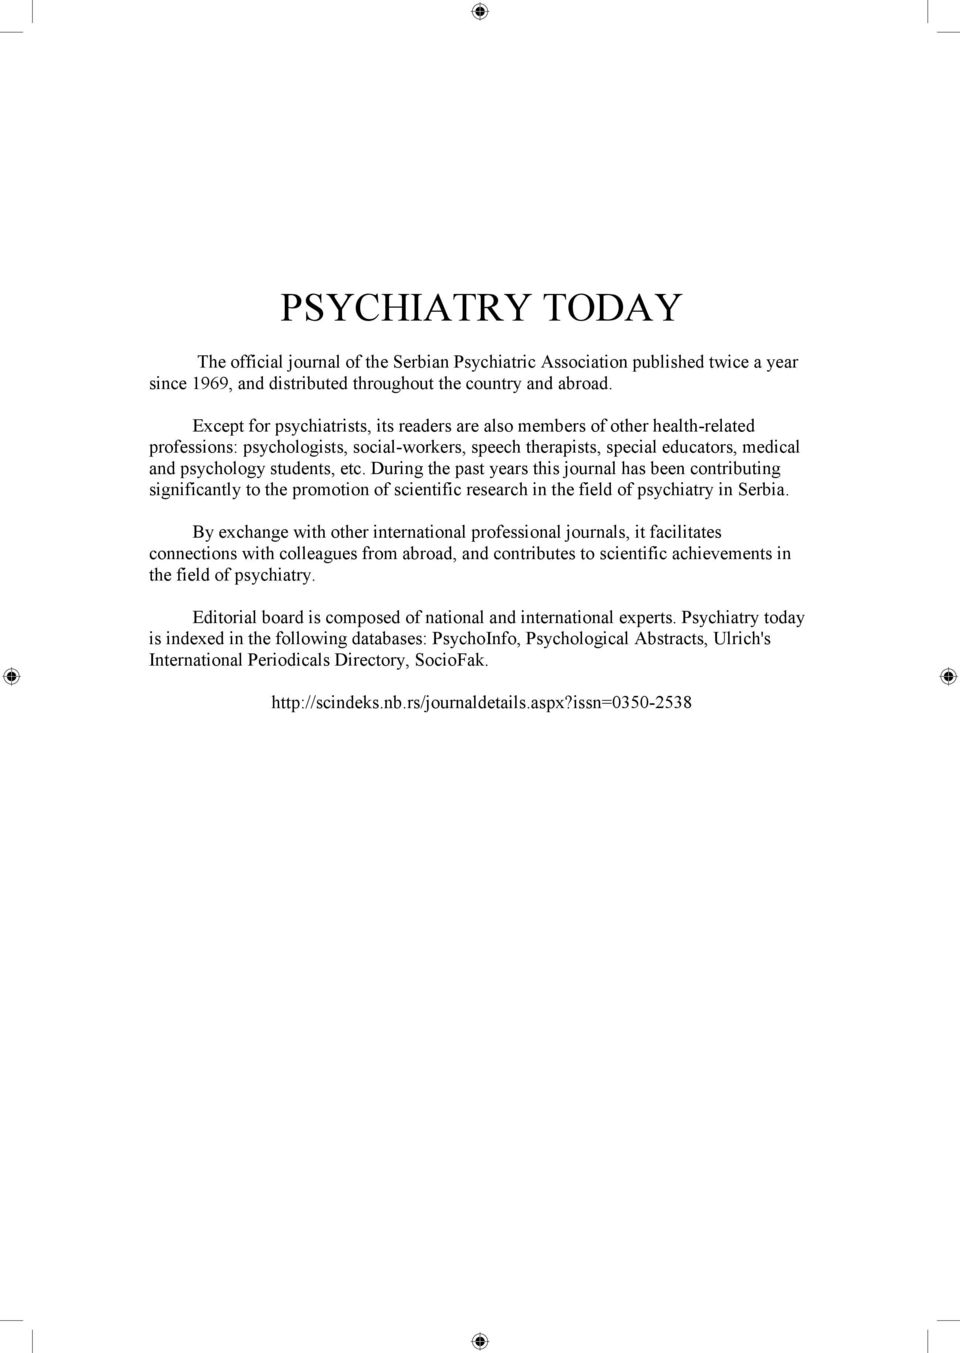 During the past years this journal has been contributing significantly to the promotion of scientific research in the field of psychiatry in Serbia.